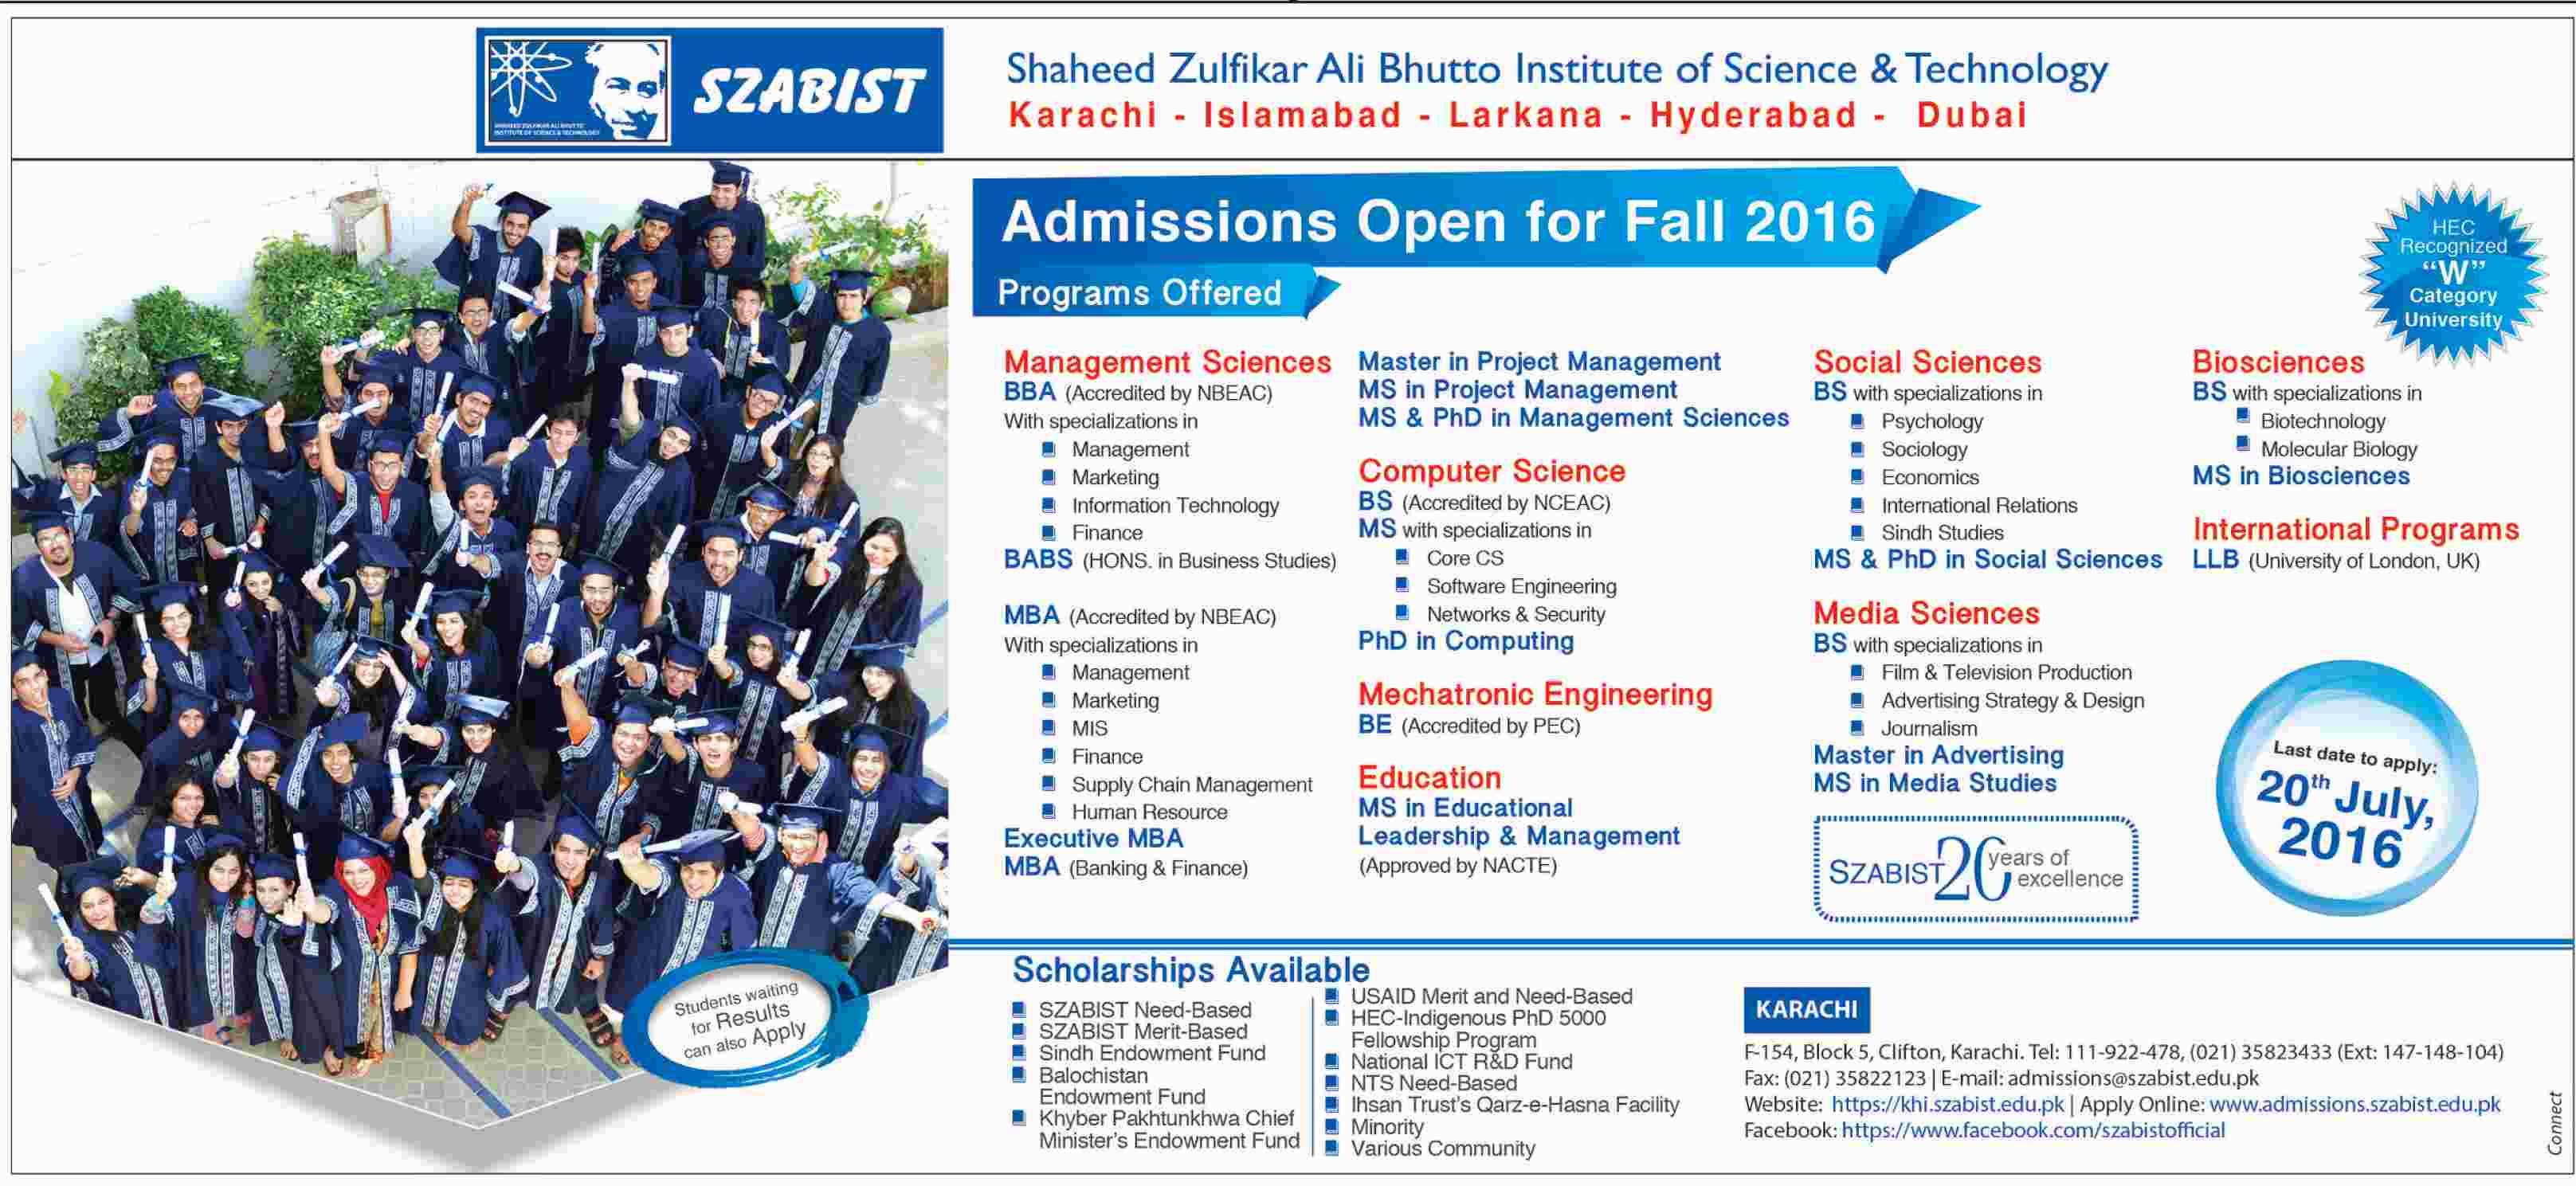 Shaheed Zulfikar Ali Bhutto Institute of Science and Technology Admissions